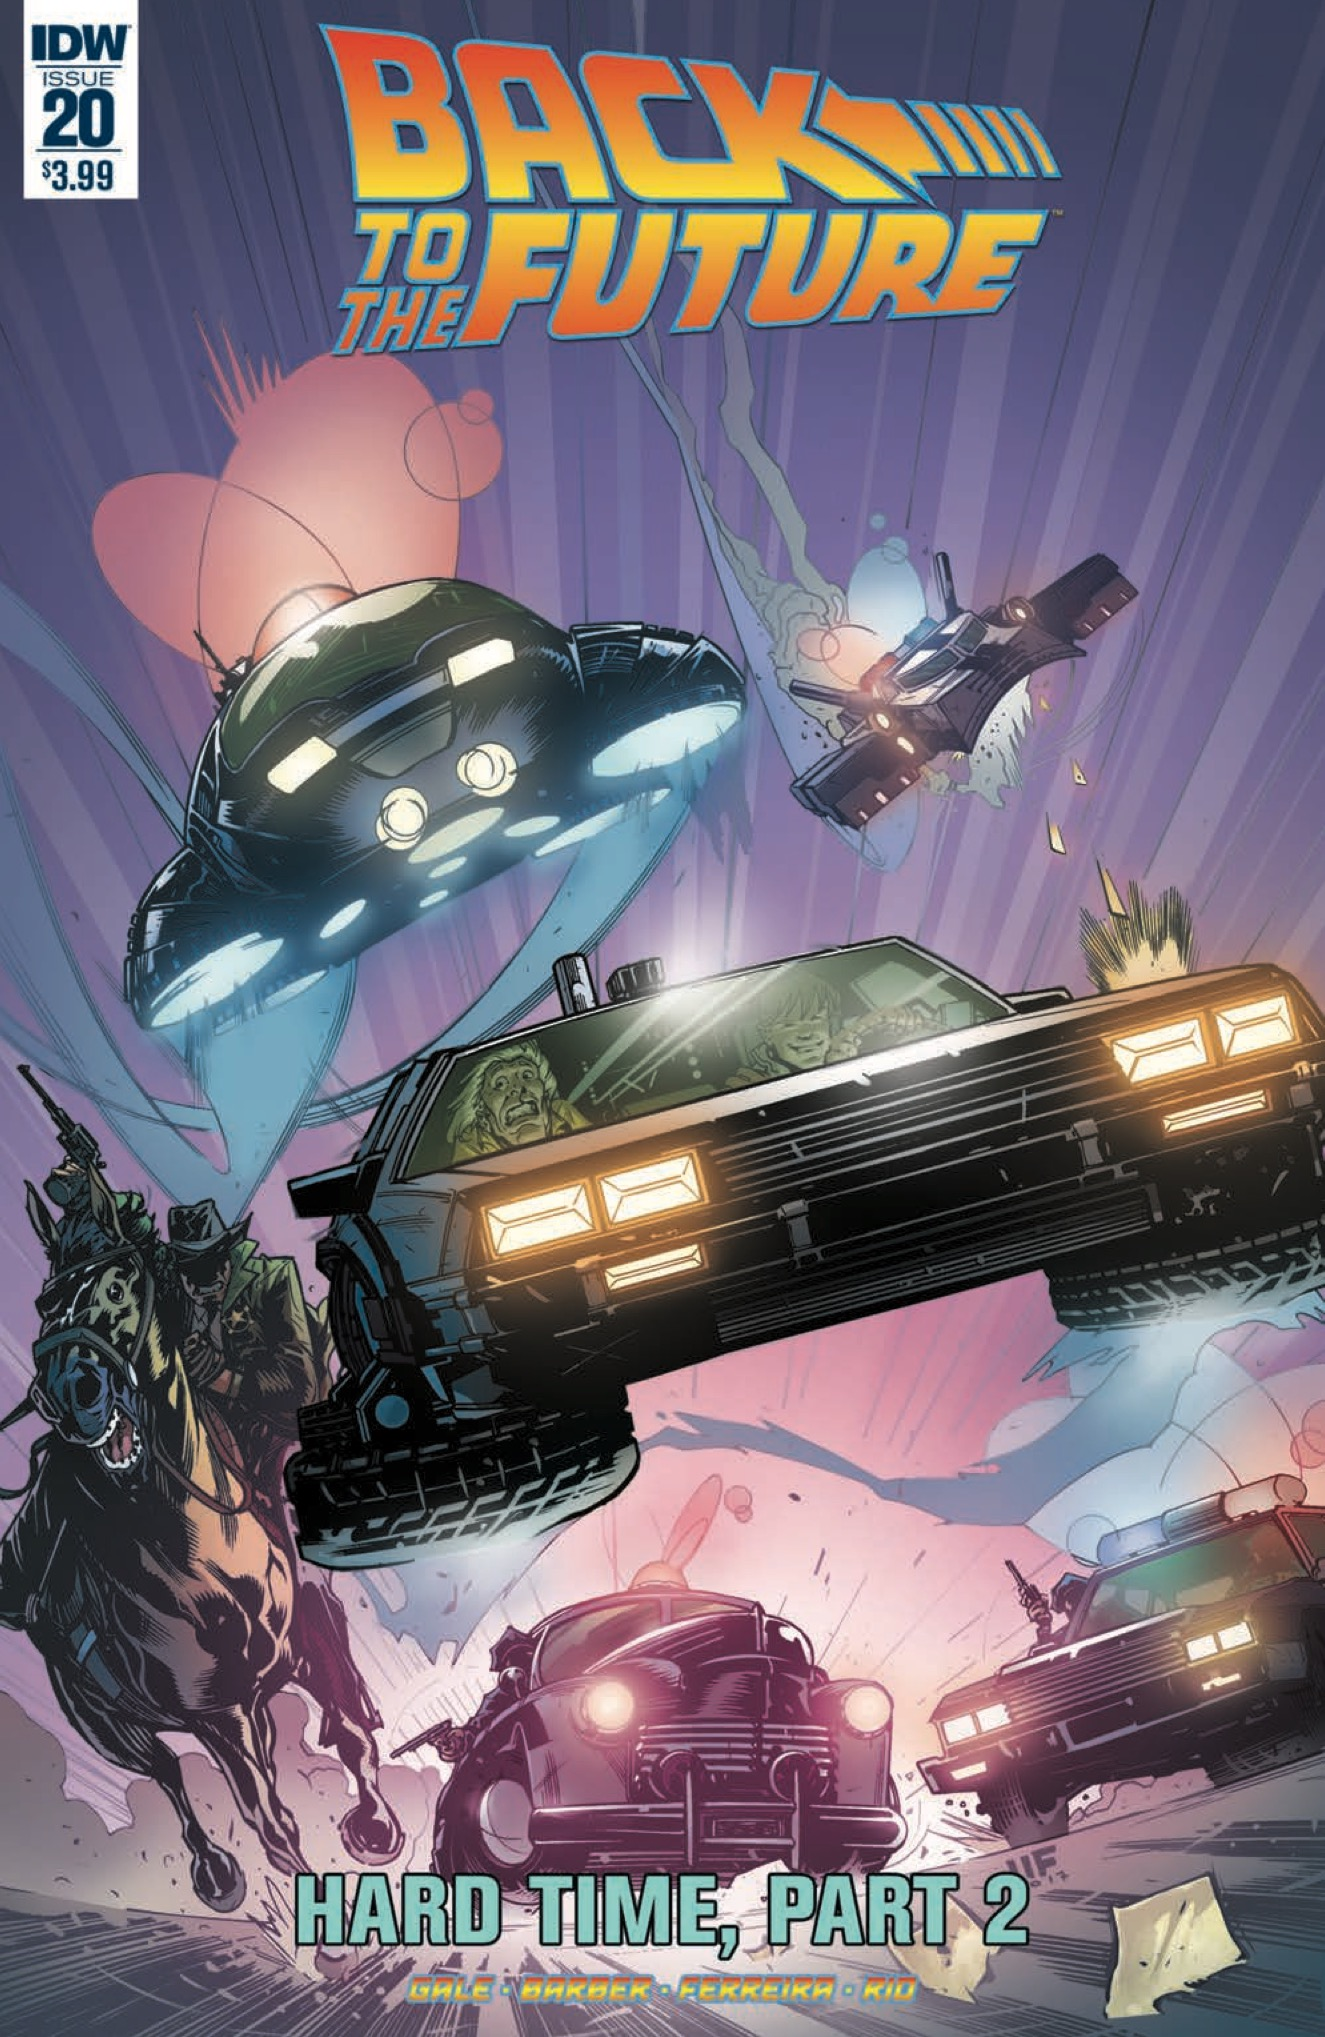 [EXCLUSIVE] IDW Preview: Back to the Future #20